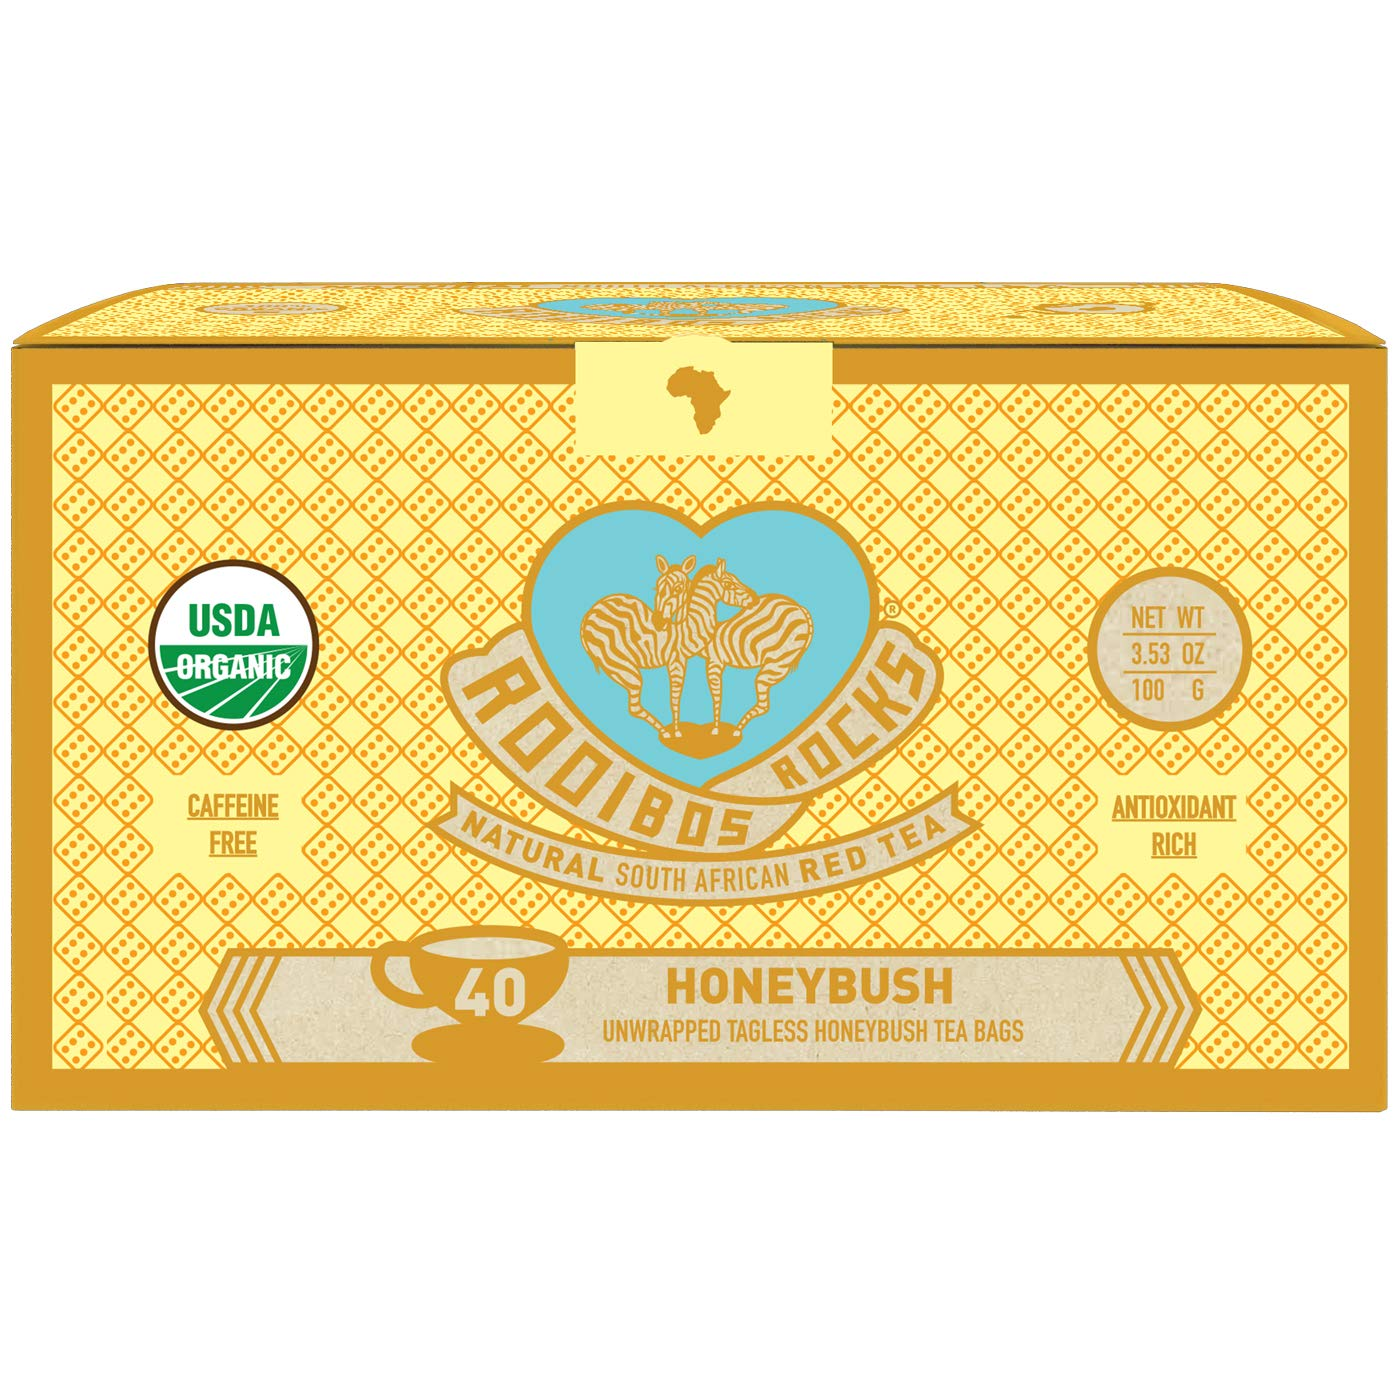 Honeybush Tea Immune Support Teabags - 40 Organic Non GMO Naturally Caffeine Free South African Mountain Honeybush Tagless Herbal Tea Bags, by Rooibos Rocks. Feel the Goodness and boost your immunity